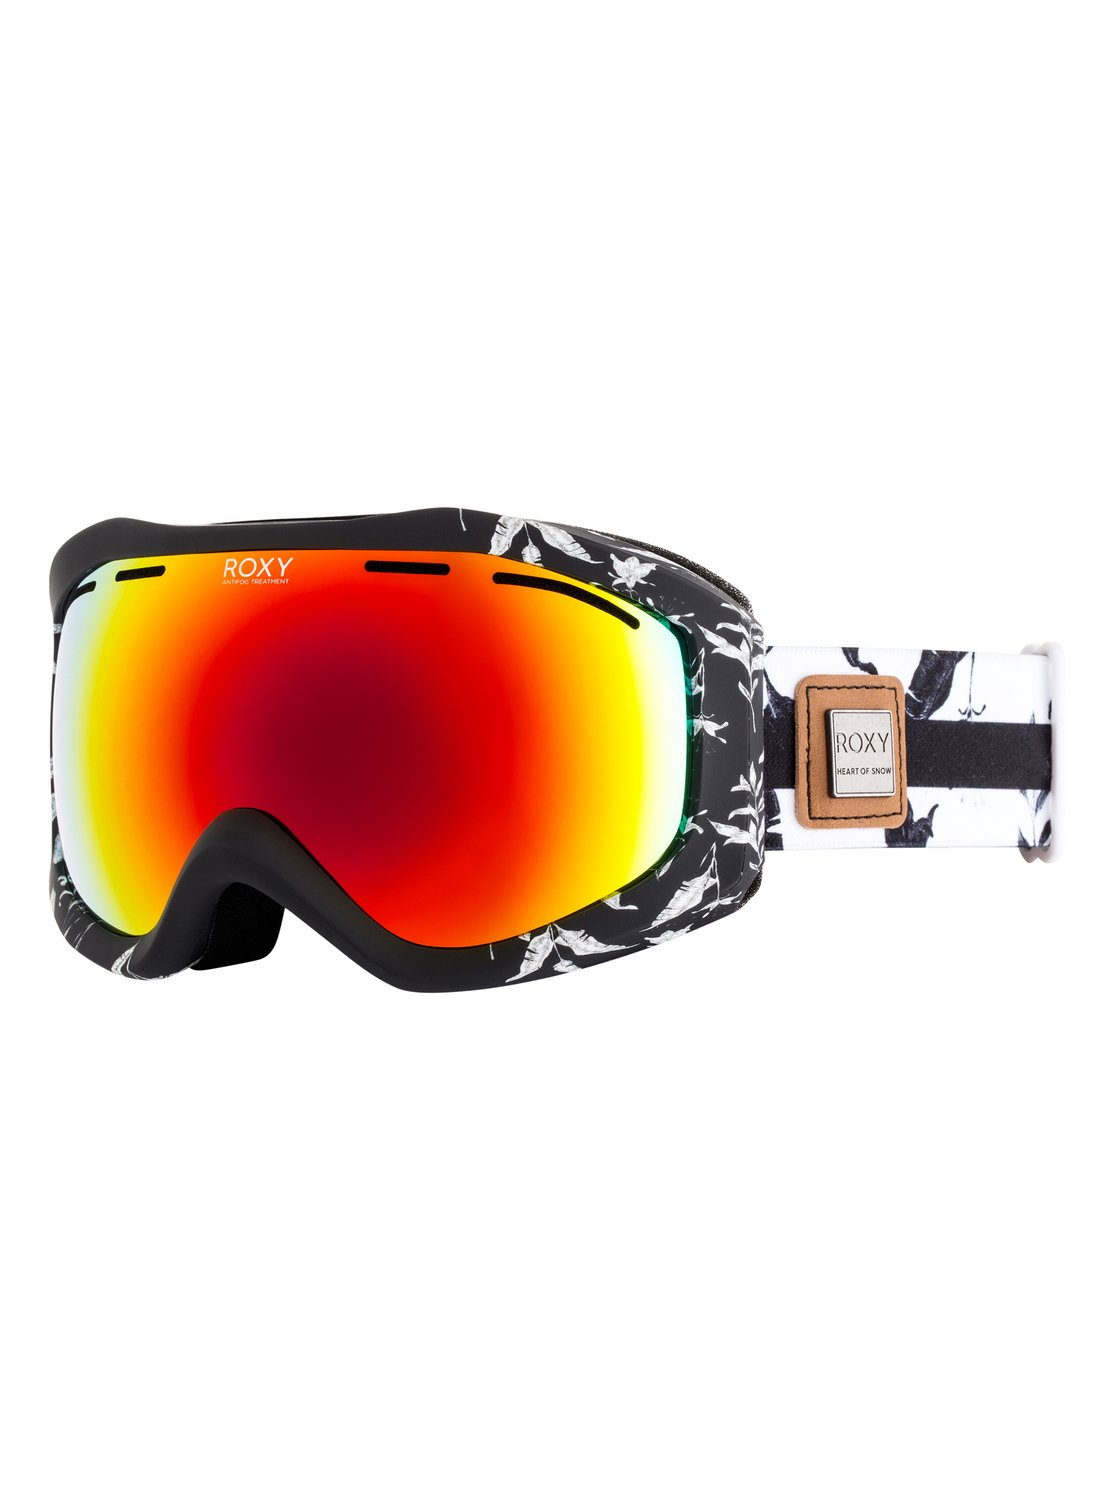 Roxy Sunset Goggles